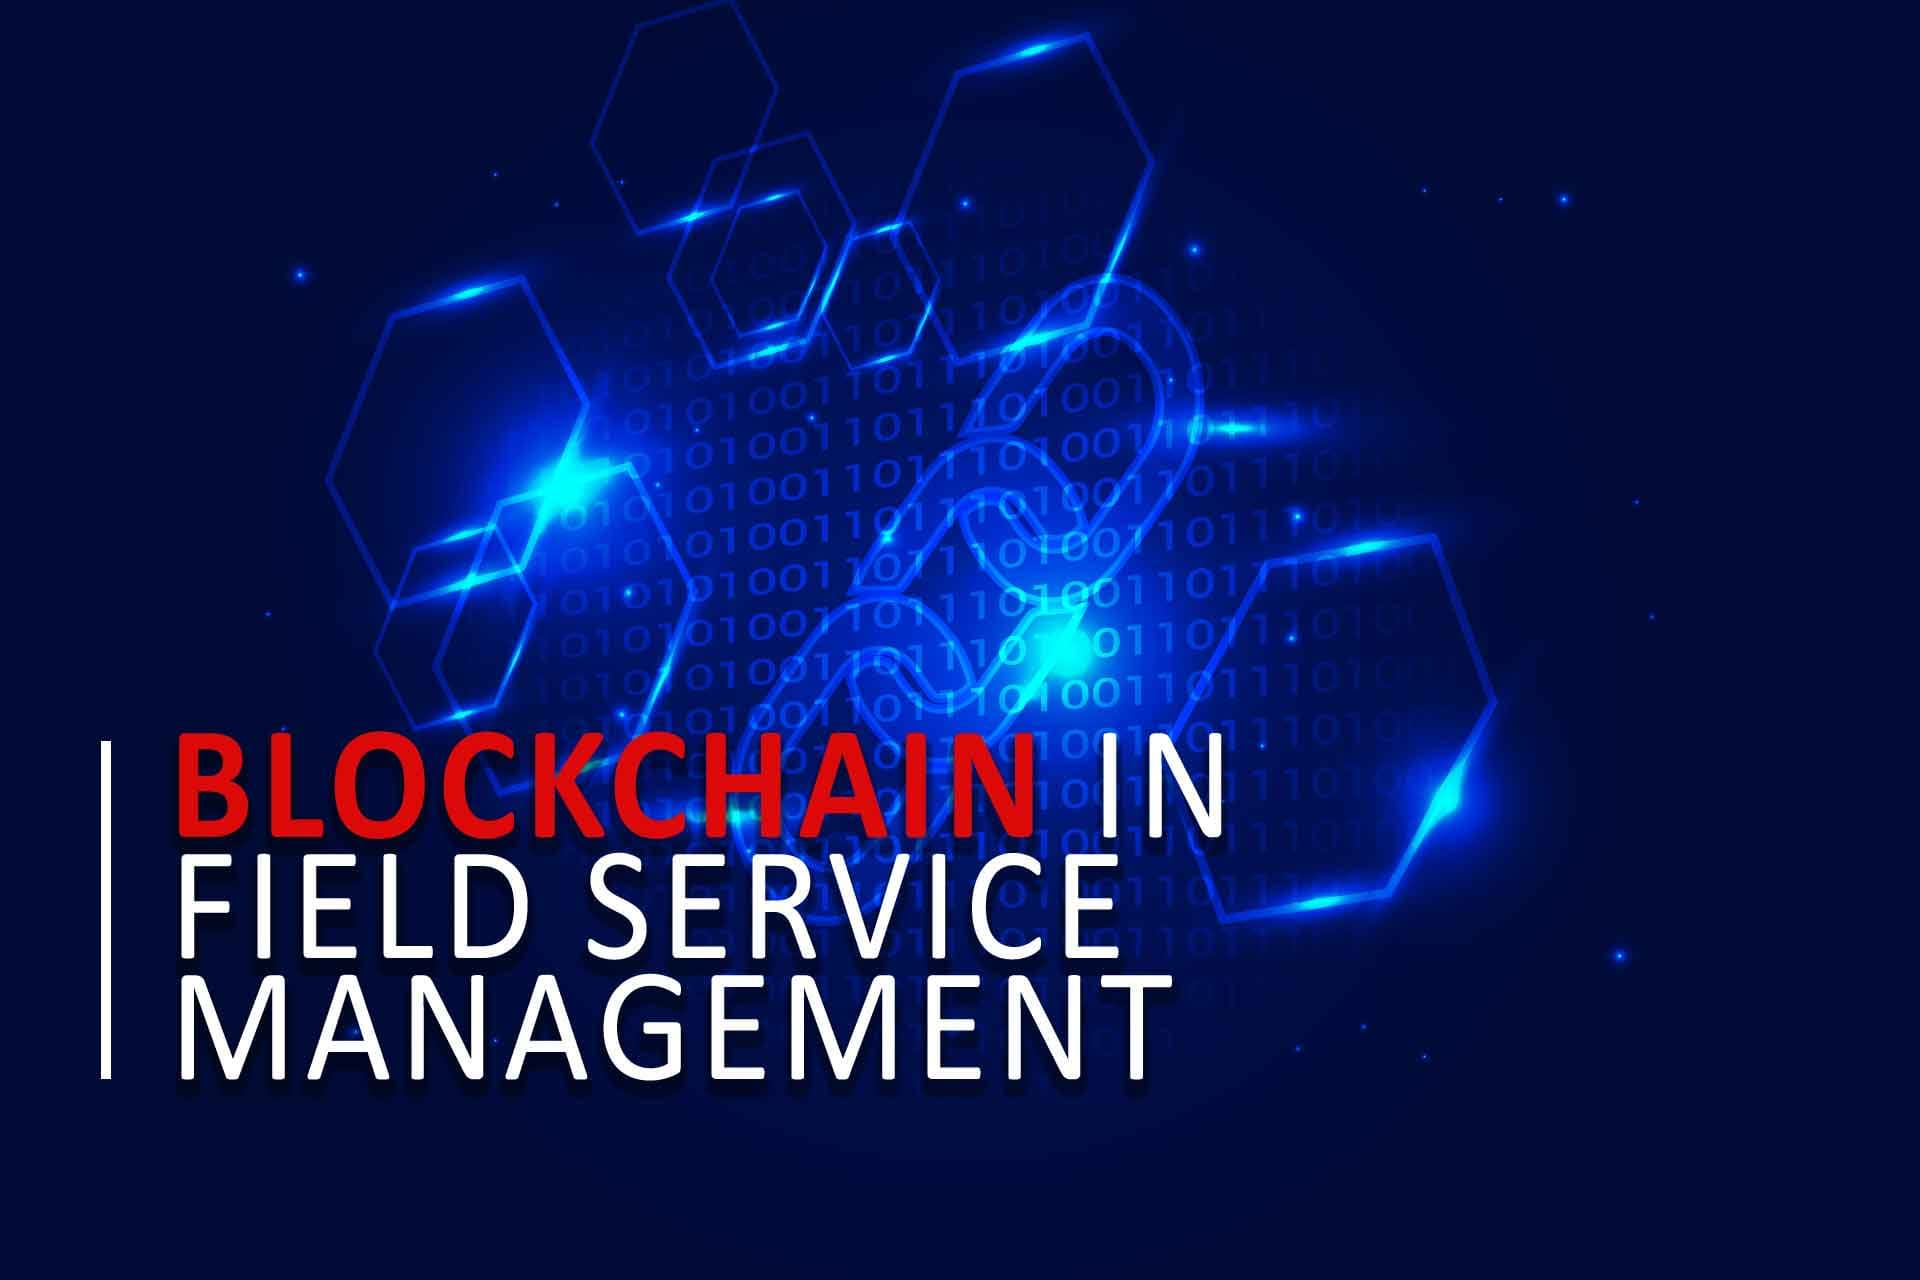 block chain in field service management